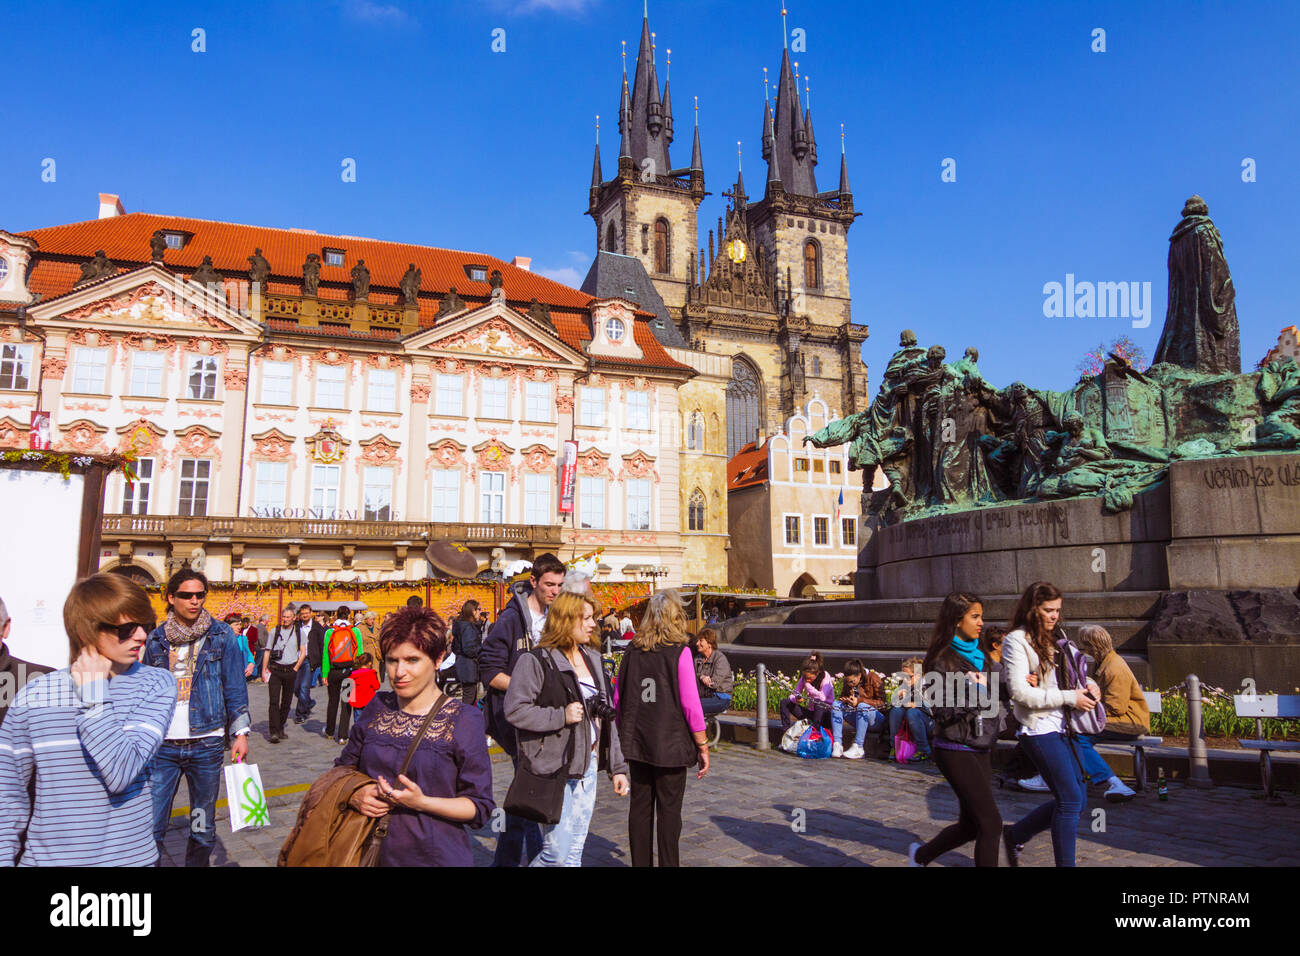 Prague, Czech Republic : Tourists at the Old Town Square stand by the Jan Hus Memorial designed by Ladislav Šaloun in 1915 with the Church of Our Lady - Stock Image